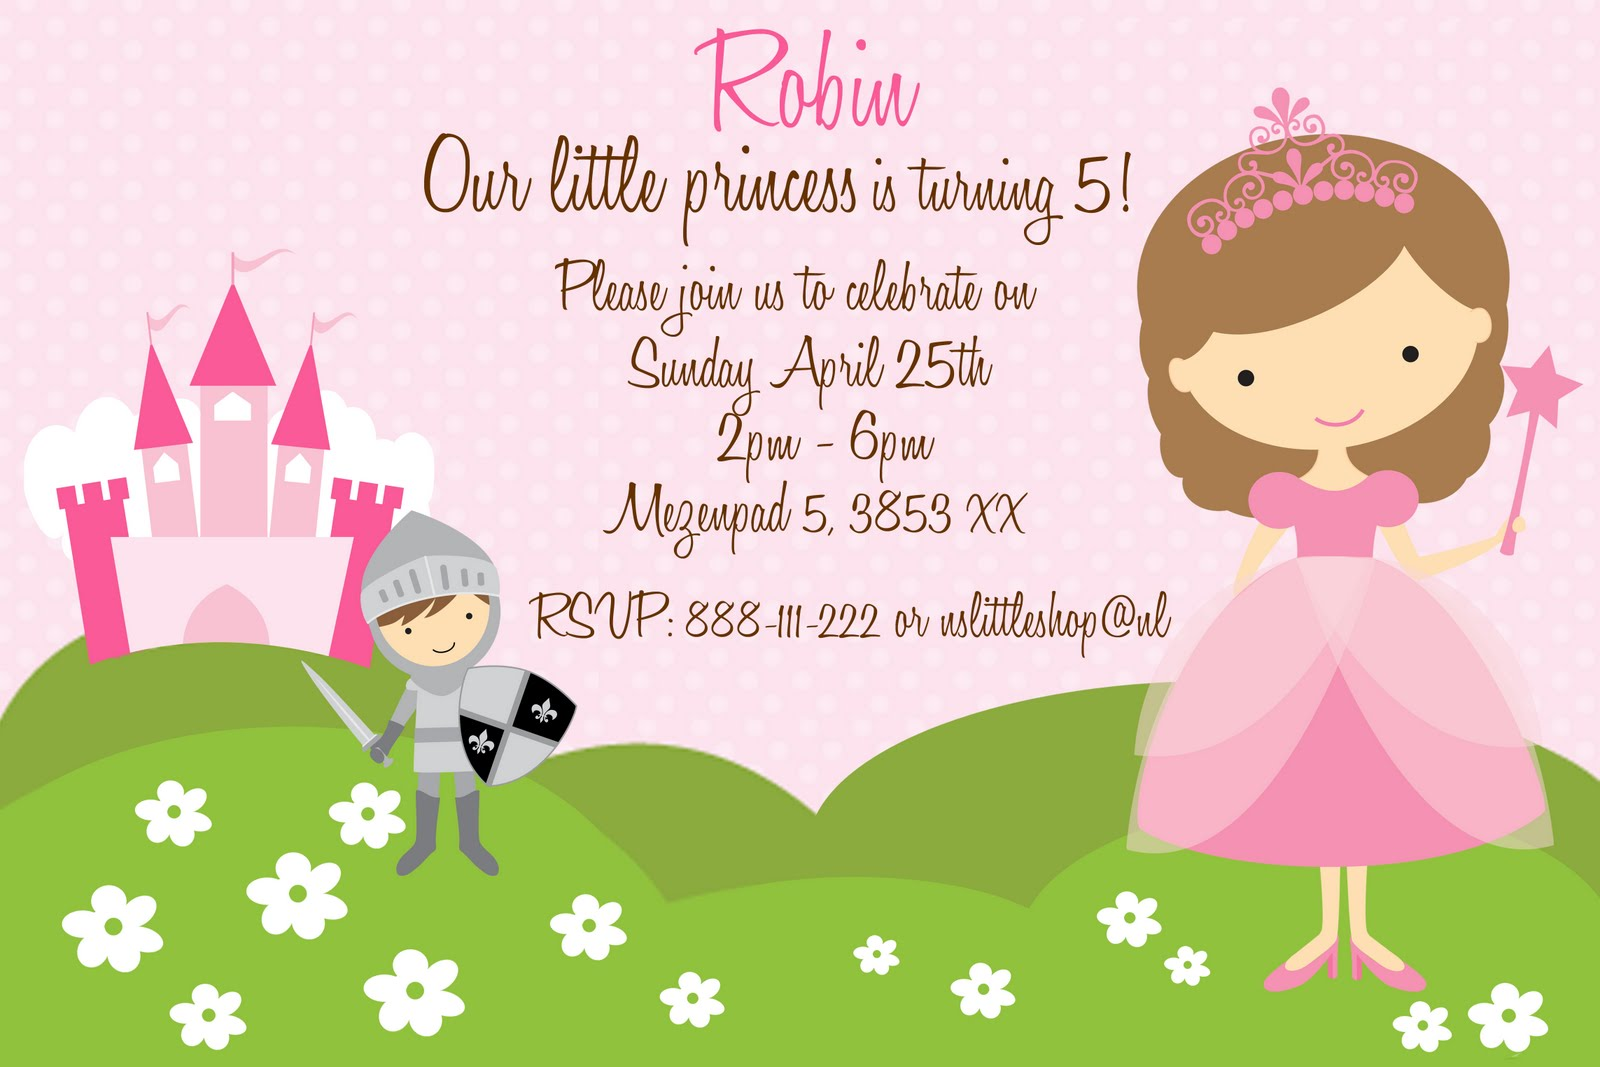 nslittleshop party decorations and more Princesses and Knights – Princess and Knight Party Invitations